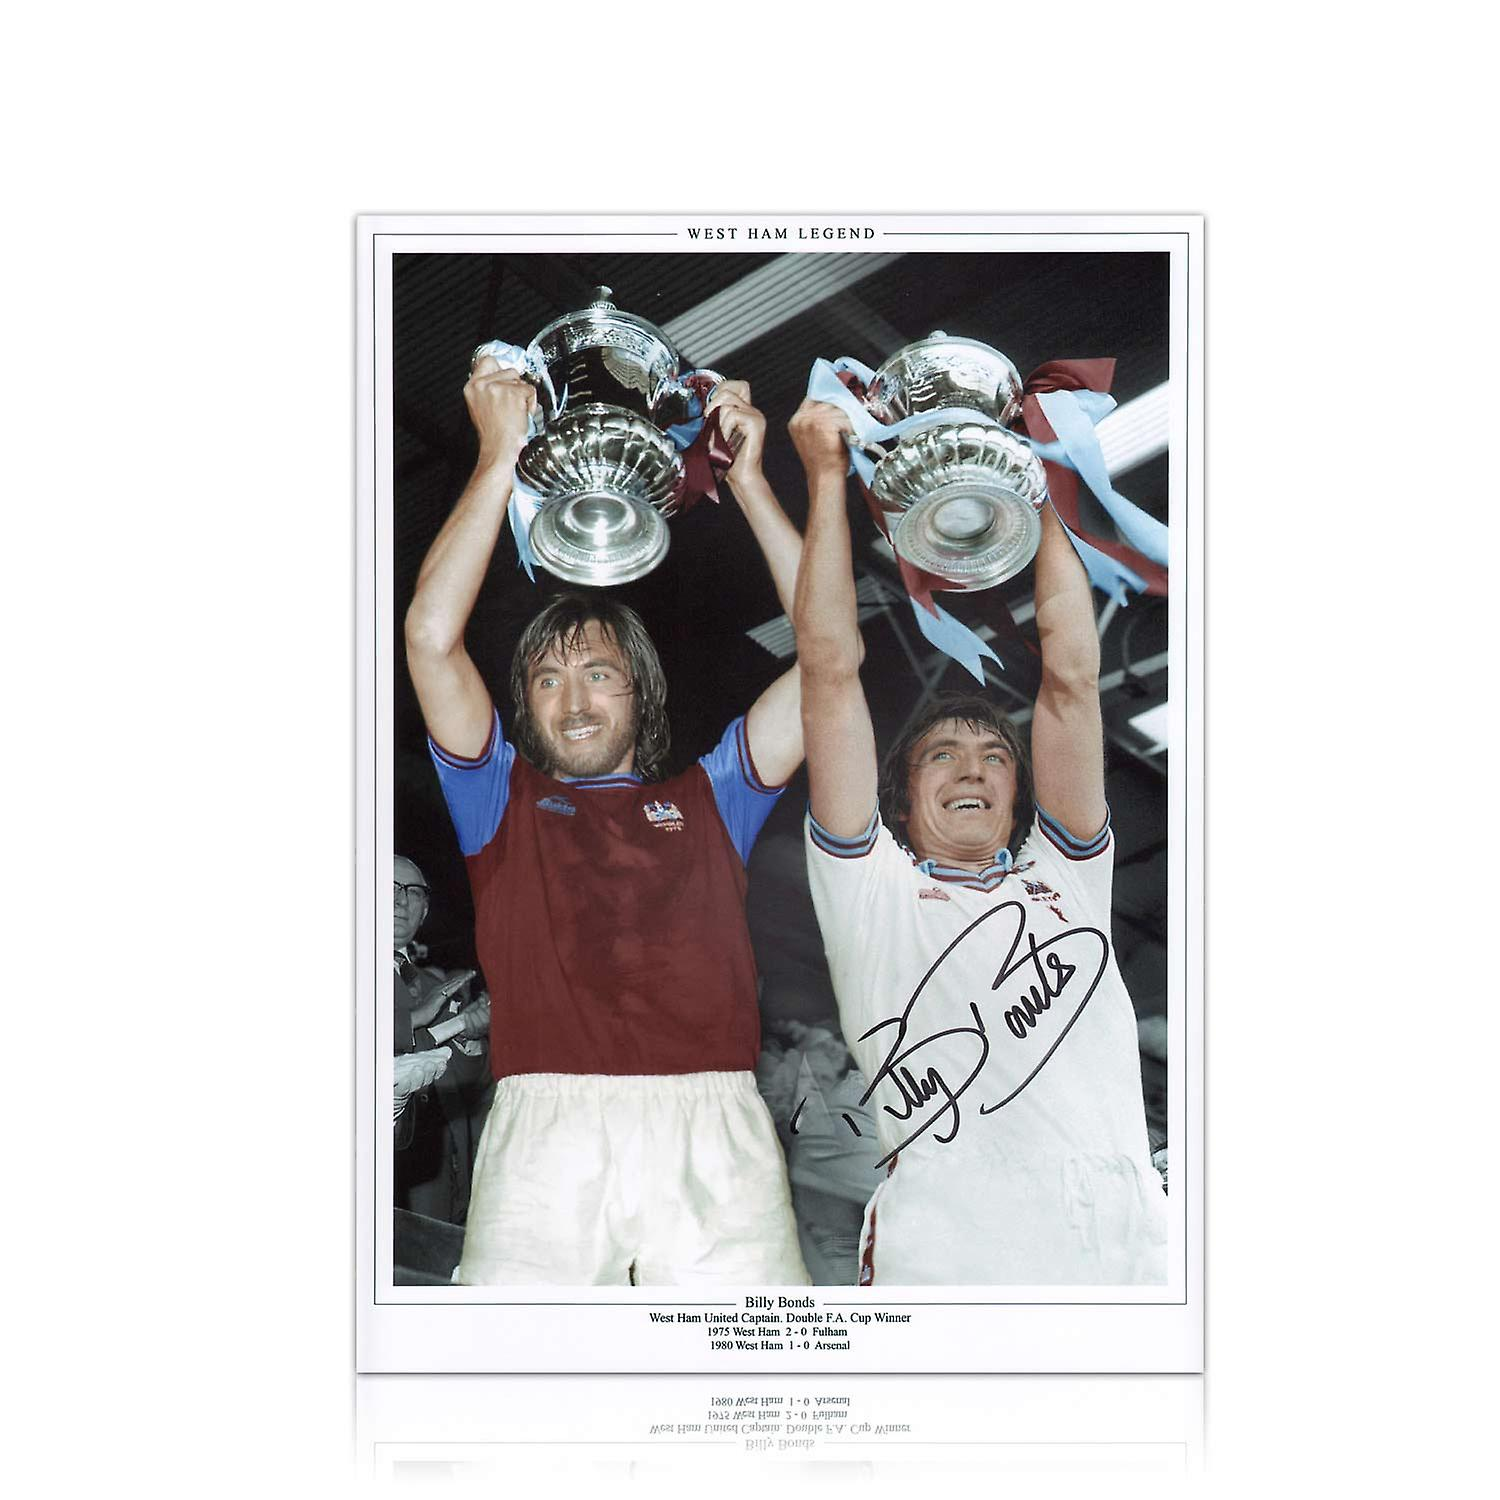 Billy Bonds Signed West Ham United Photograph In Gift Box